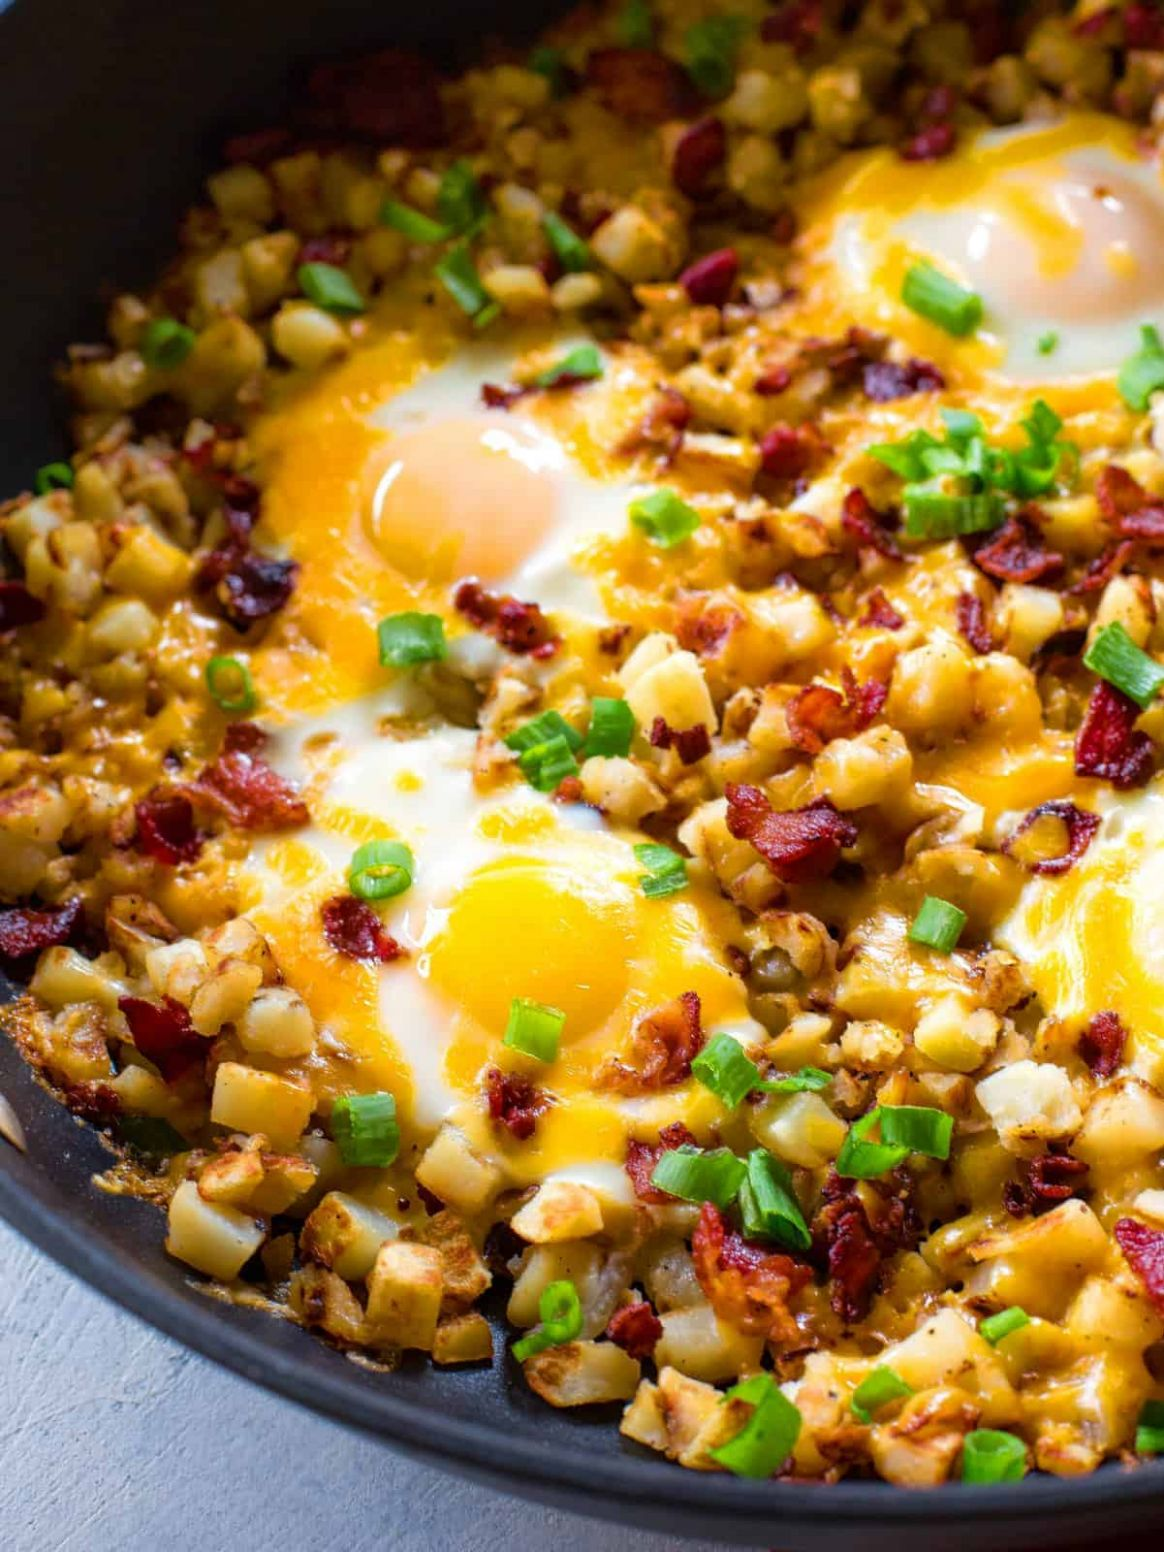 Bacon, Egg, and Potato Breakfast Skillet - The Girl Who Ate Everything